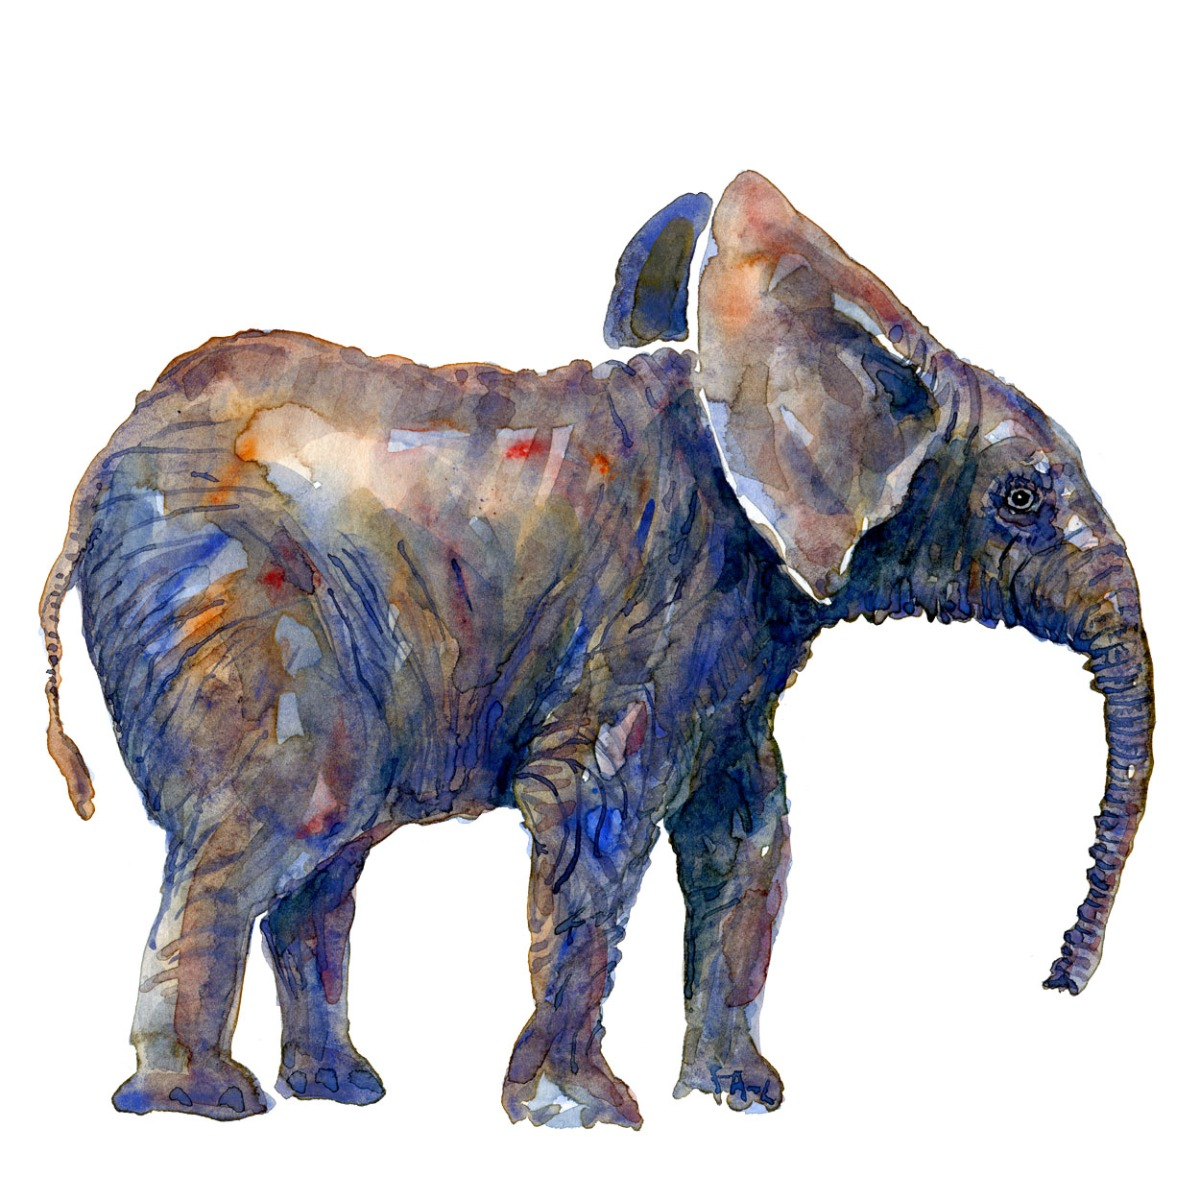 Watercolor of elephant art by Frits Ahlefeldt